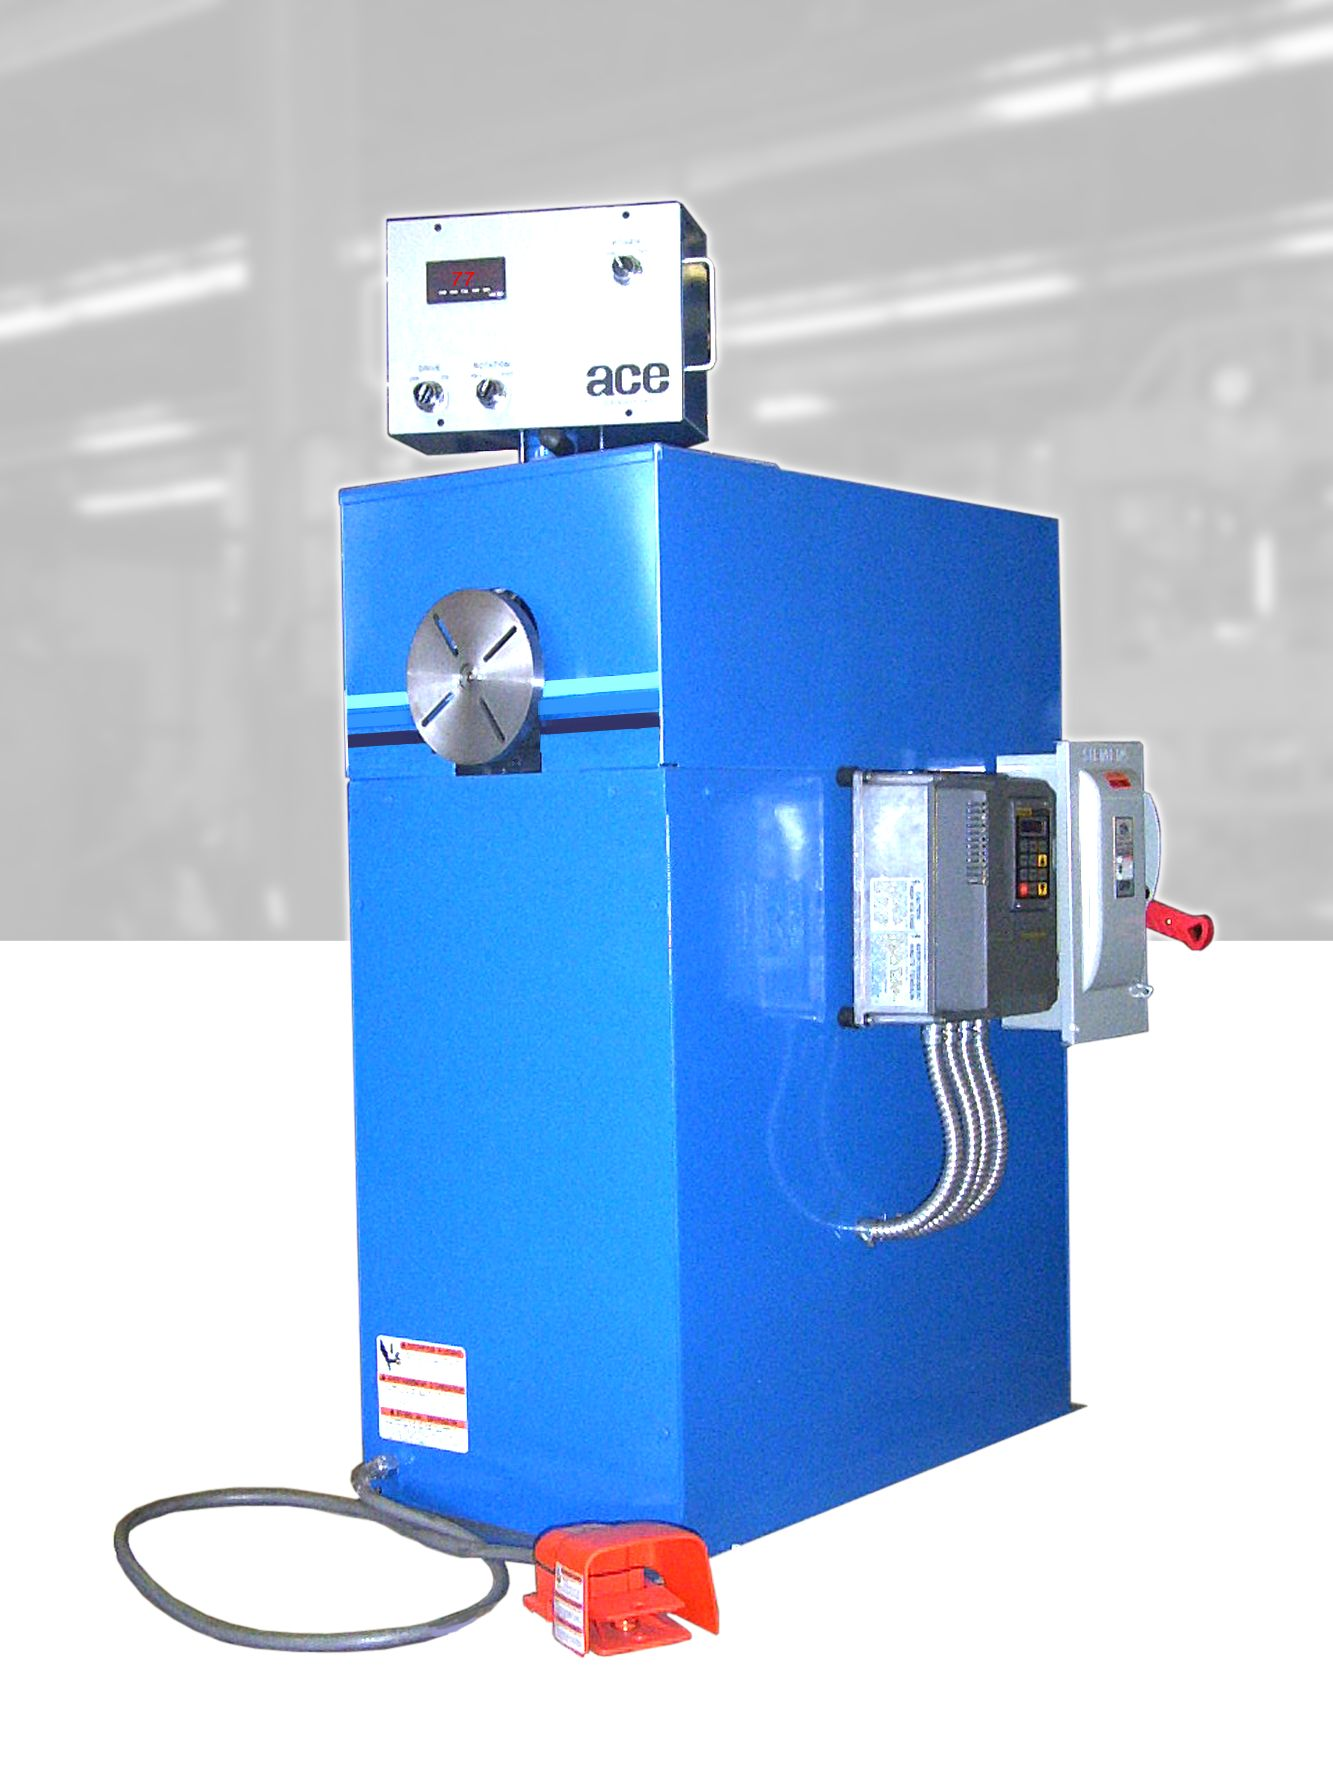 Auto Stop Ligh Duty Coil Winding Machine 77 for LIT.jpg